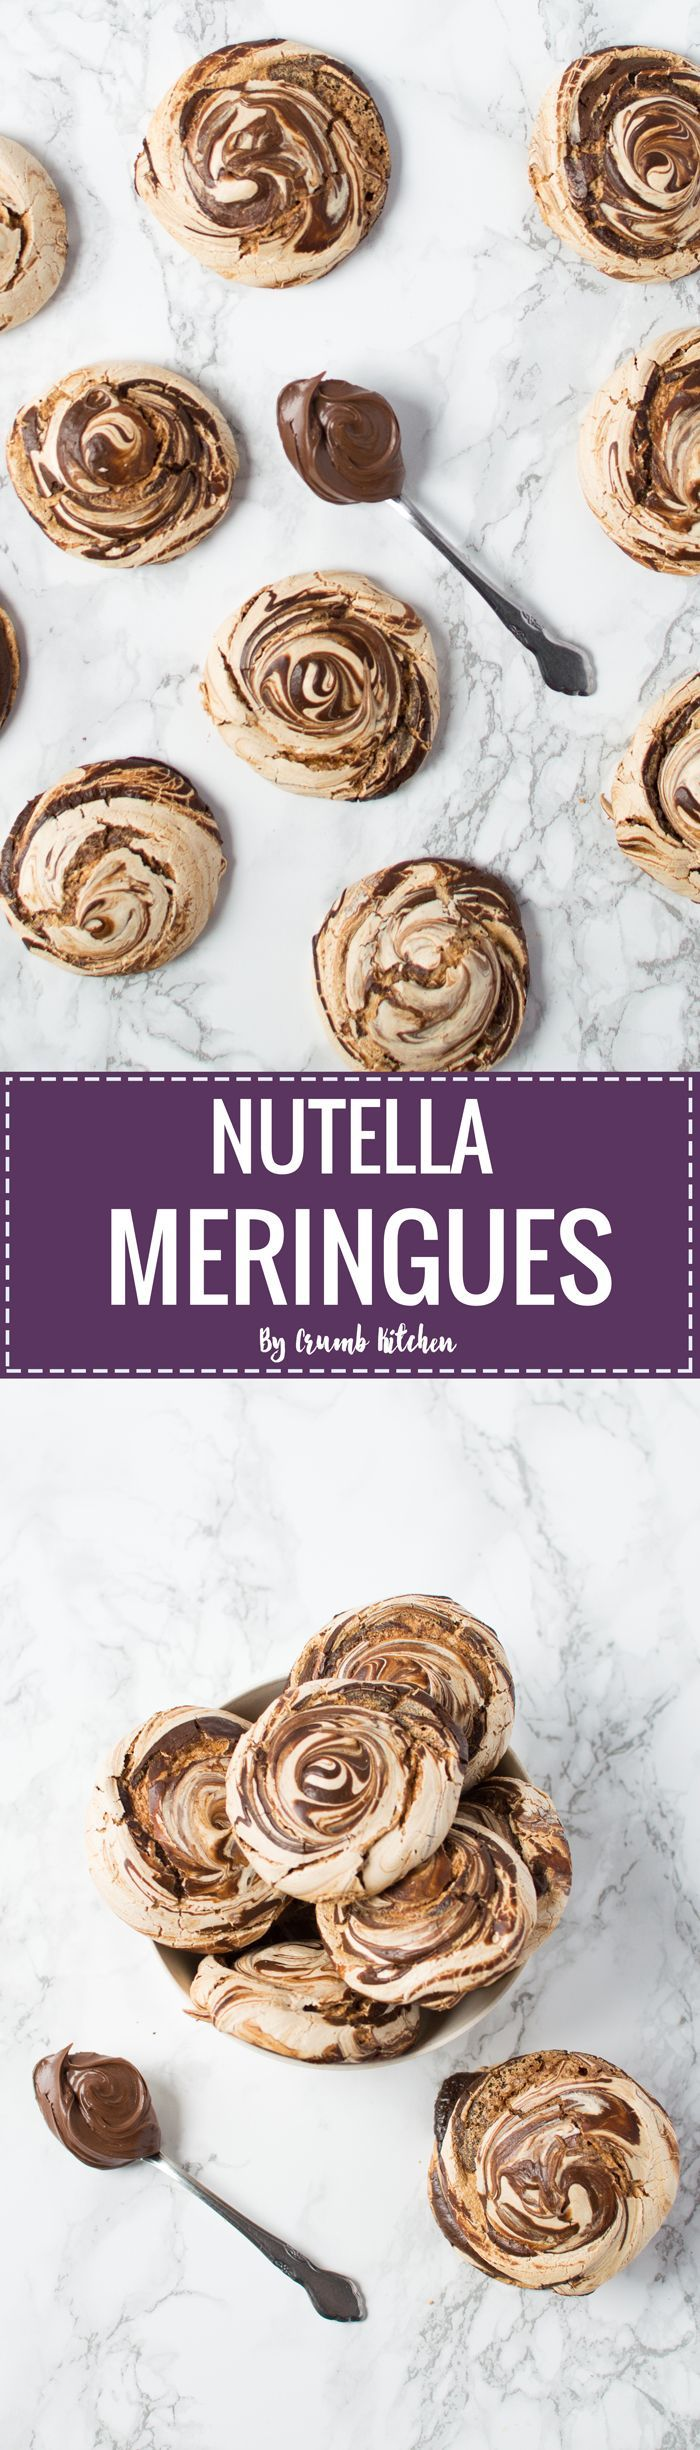 Pillowy clouds of sweet meringue swirled with warm melted Nutella create a beautiful, elegant treat.   http://crumbkitchen.com